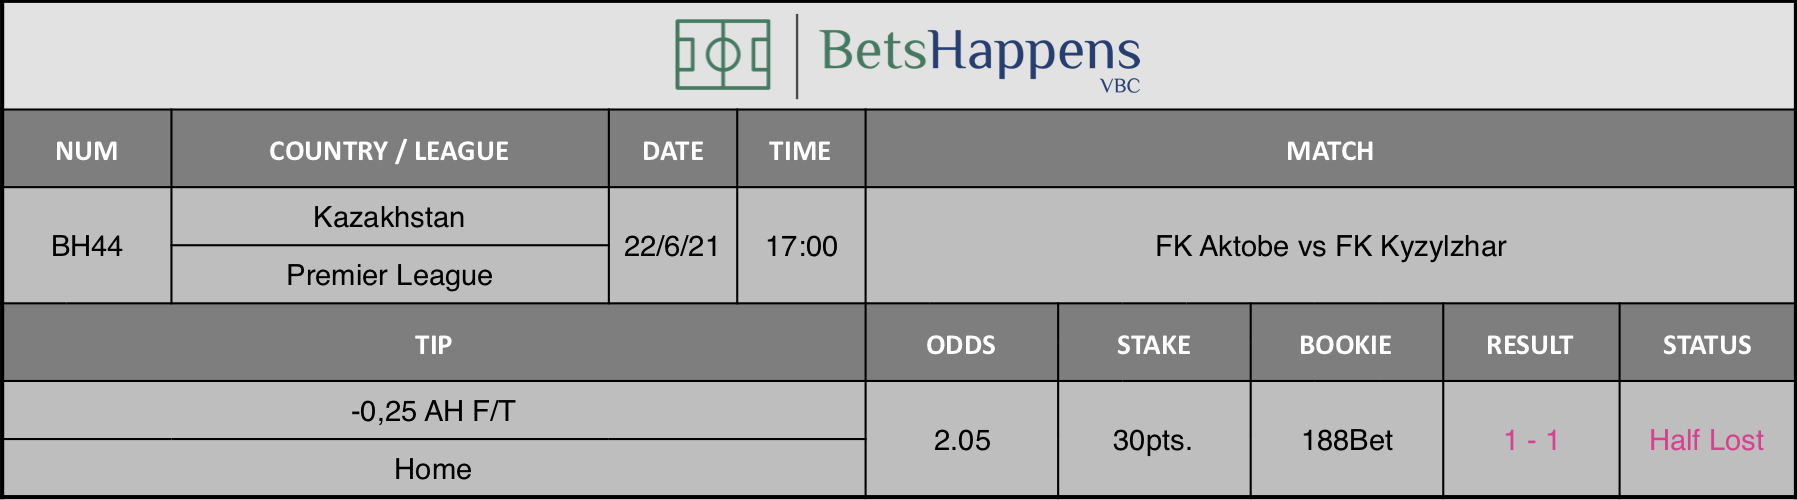 Results of our tip for the FK Aktobe vs FK Kyzylzhar match -0,25 AH F/T Home is recommended.